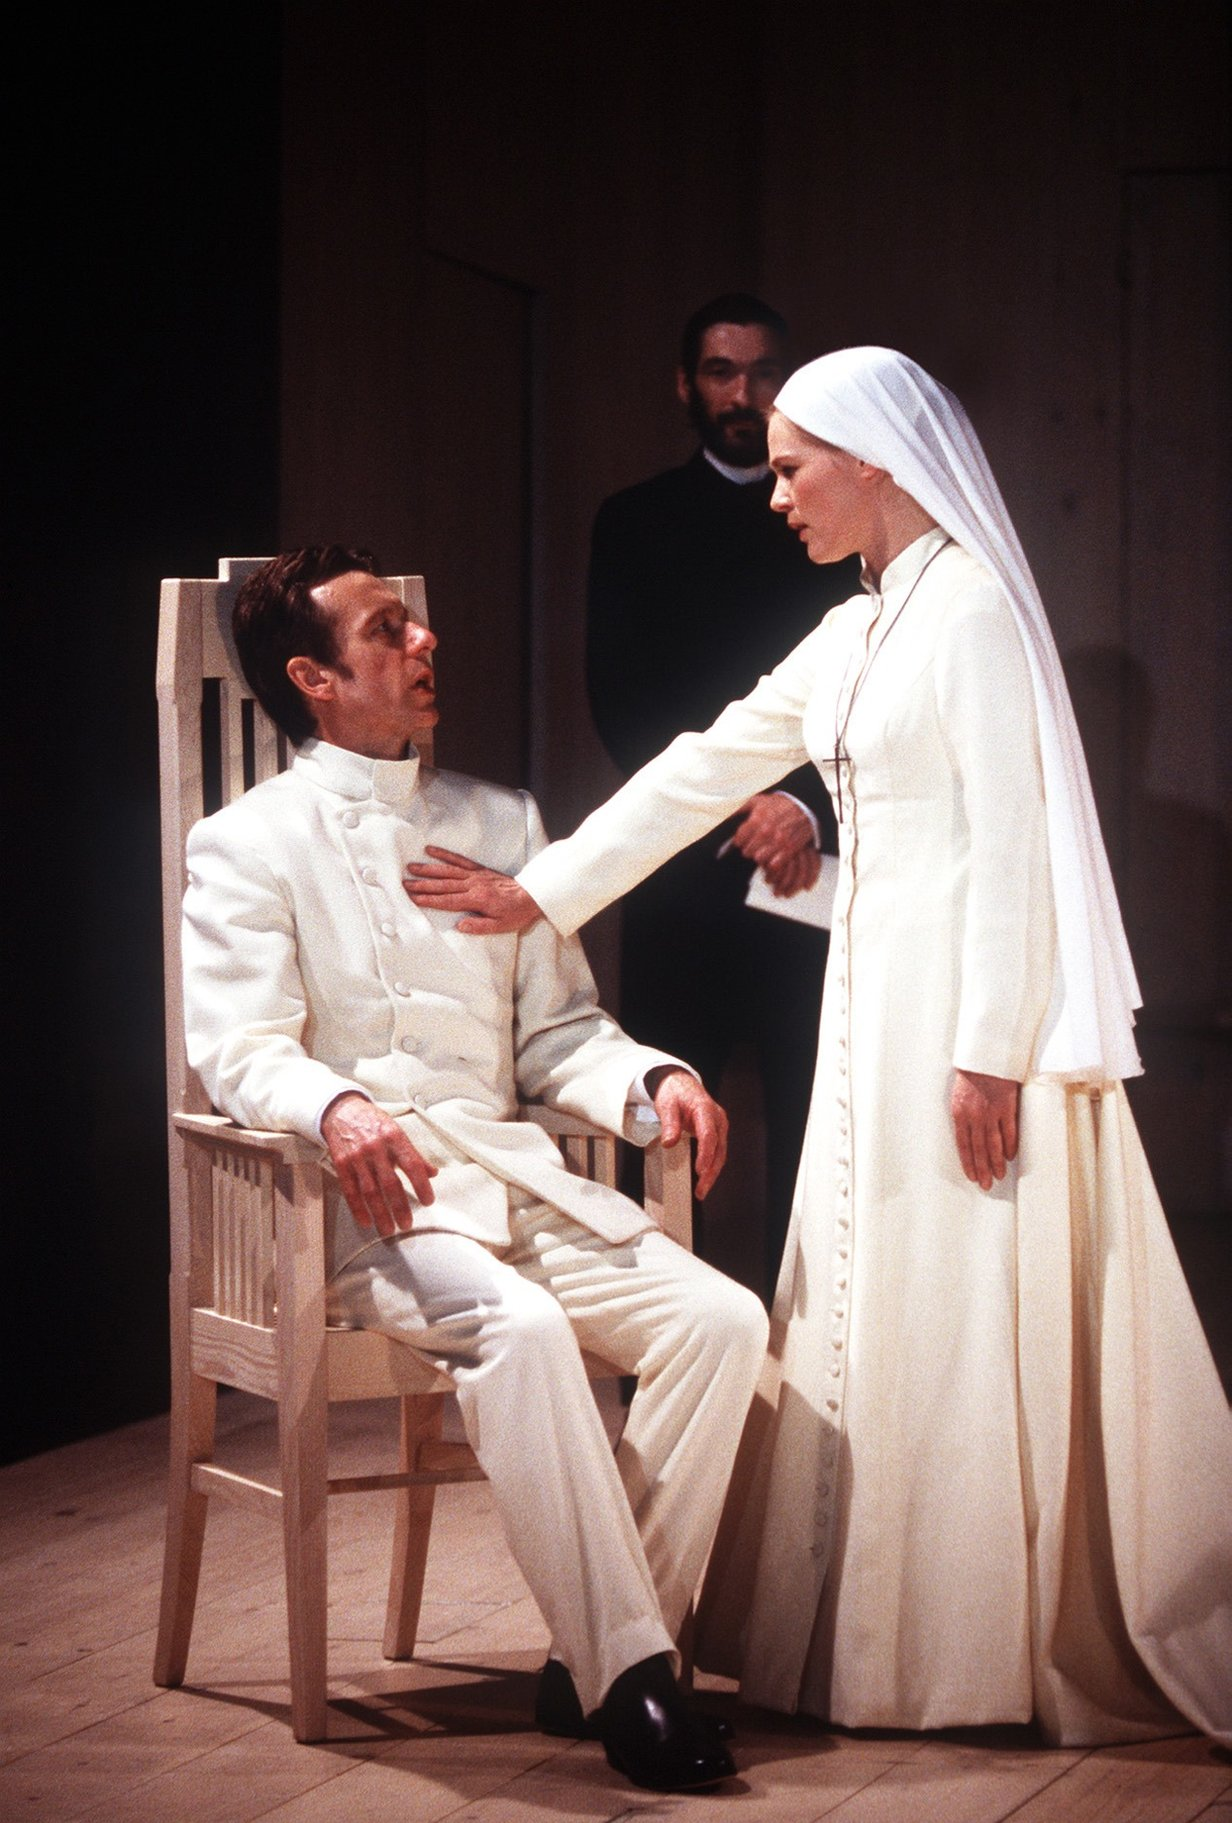 A woman in white puts a warning hand against a seated man's chest.